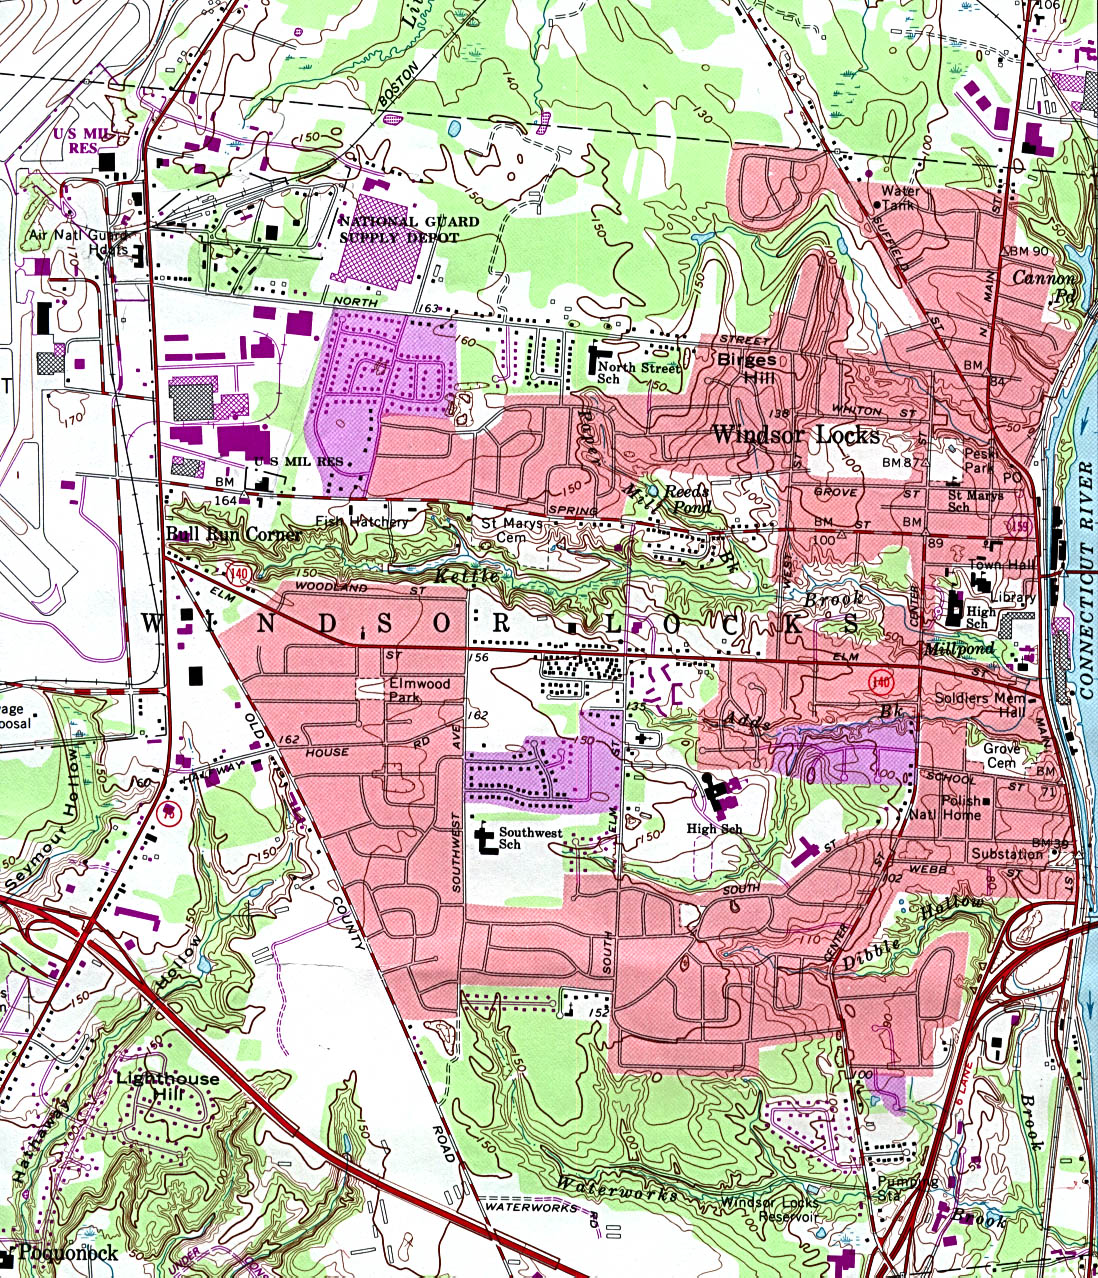 Windsor Locks Topographic City Map, Connecticut, United States